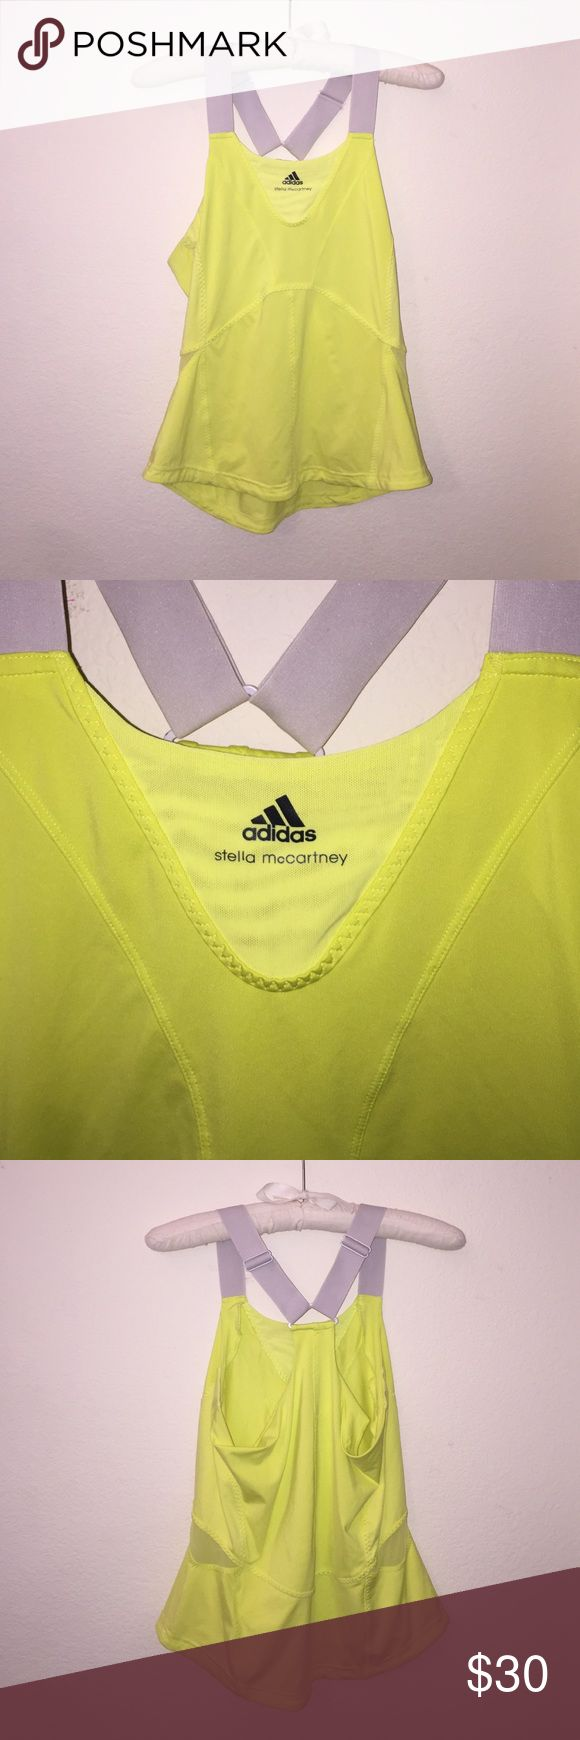 Stella for Adidas Tank Neon yellow Stella McCartney tank! Size says 44 but fits as M. In excellent condition! Perfect workout Tank! Feel free to ask any questions! Adidas by Stella McCartney Tops Tank Tops